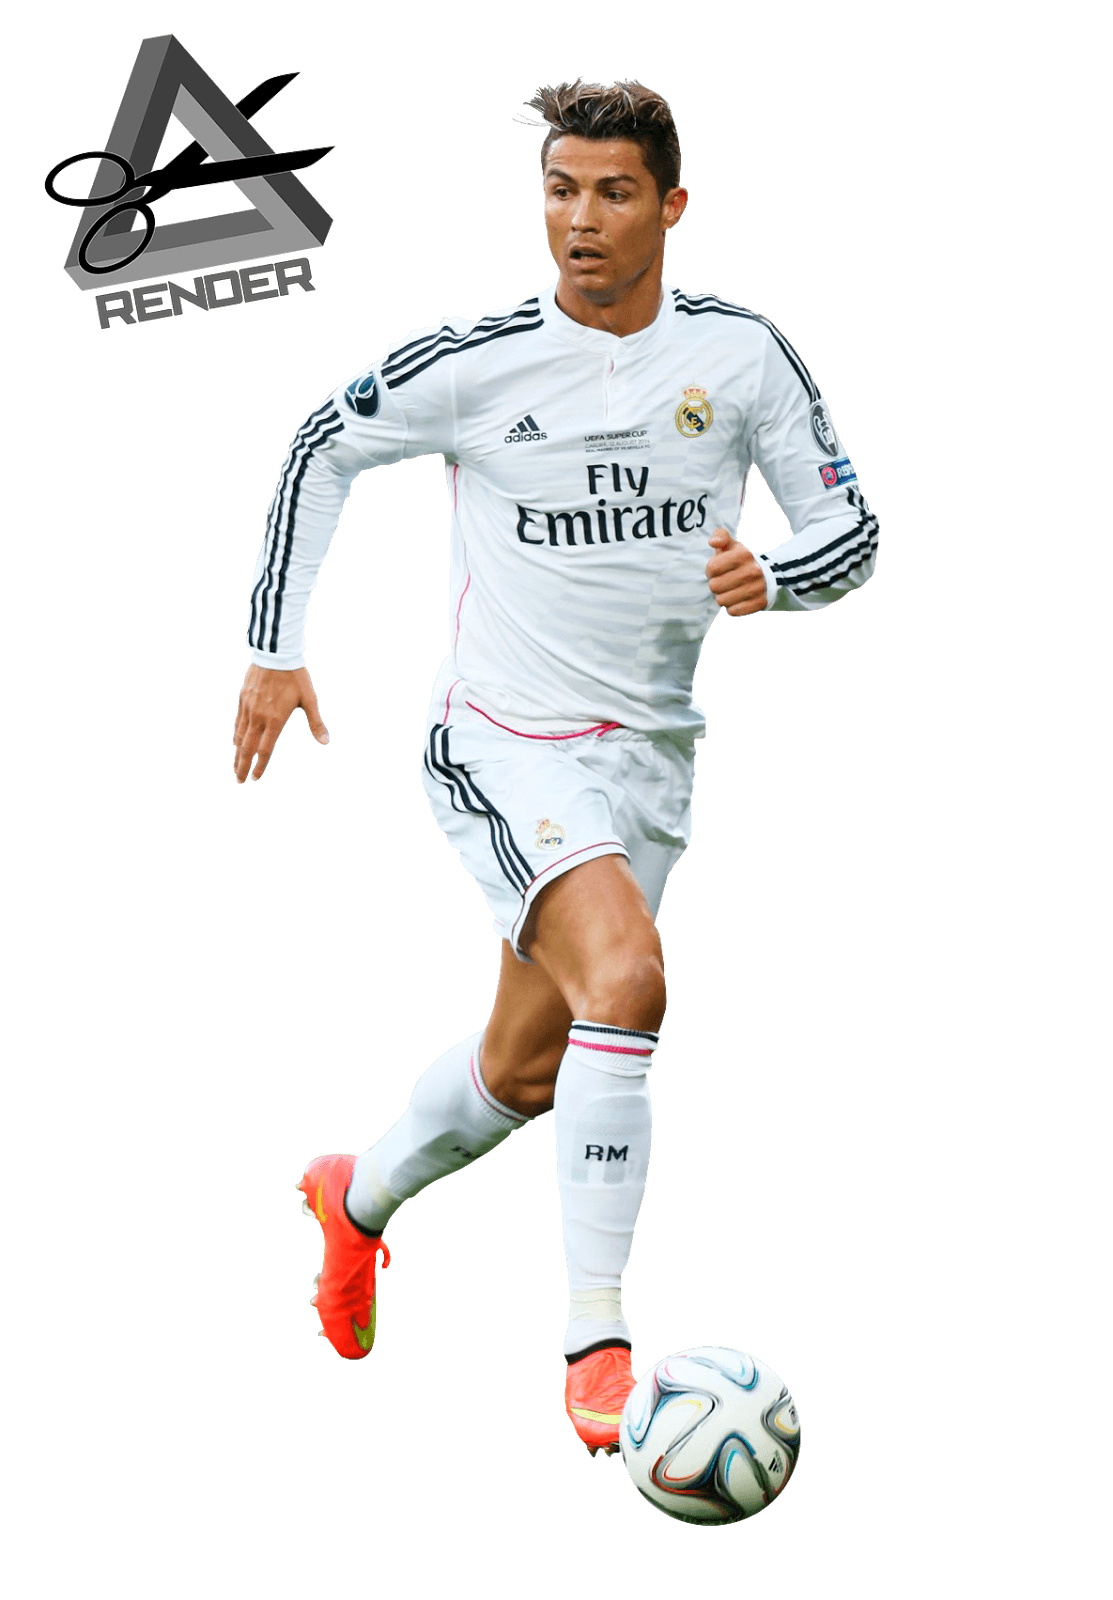 Cr7 wallpapers terbaru 2015 wallpaper cave - Foto wallpaper ...